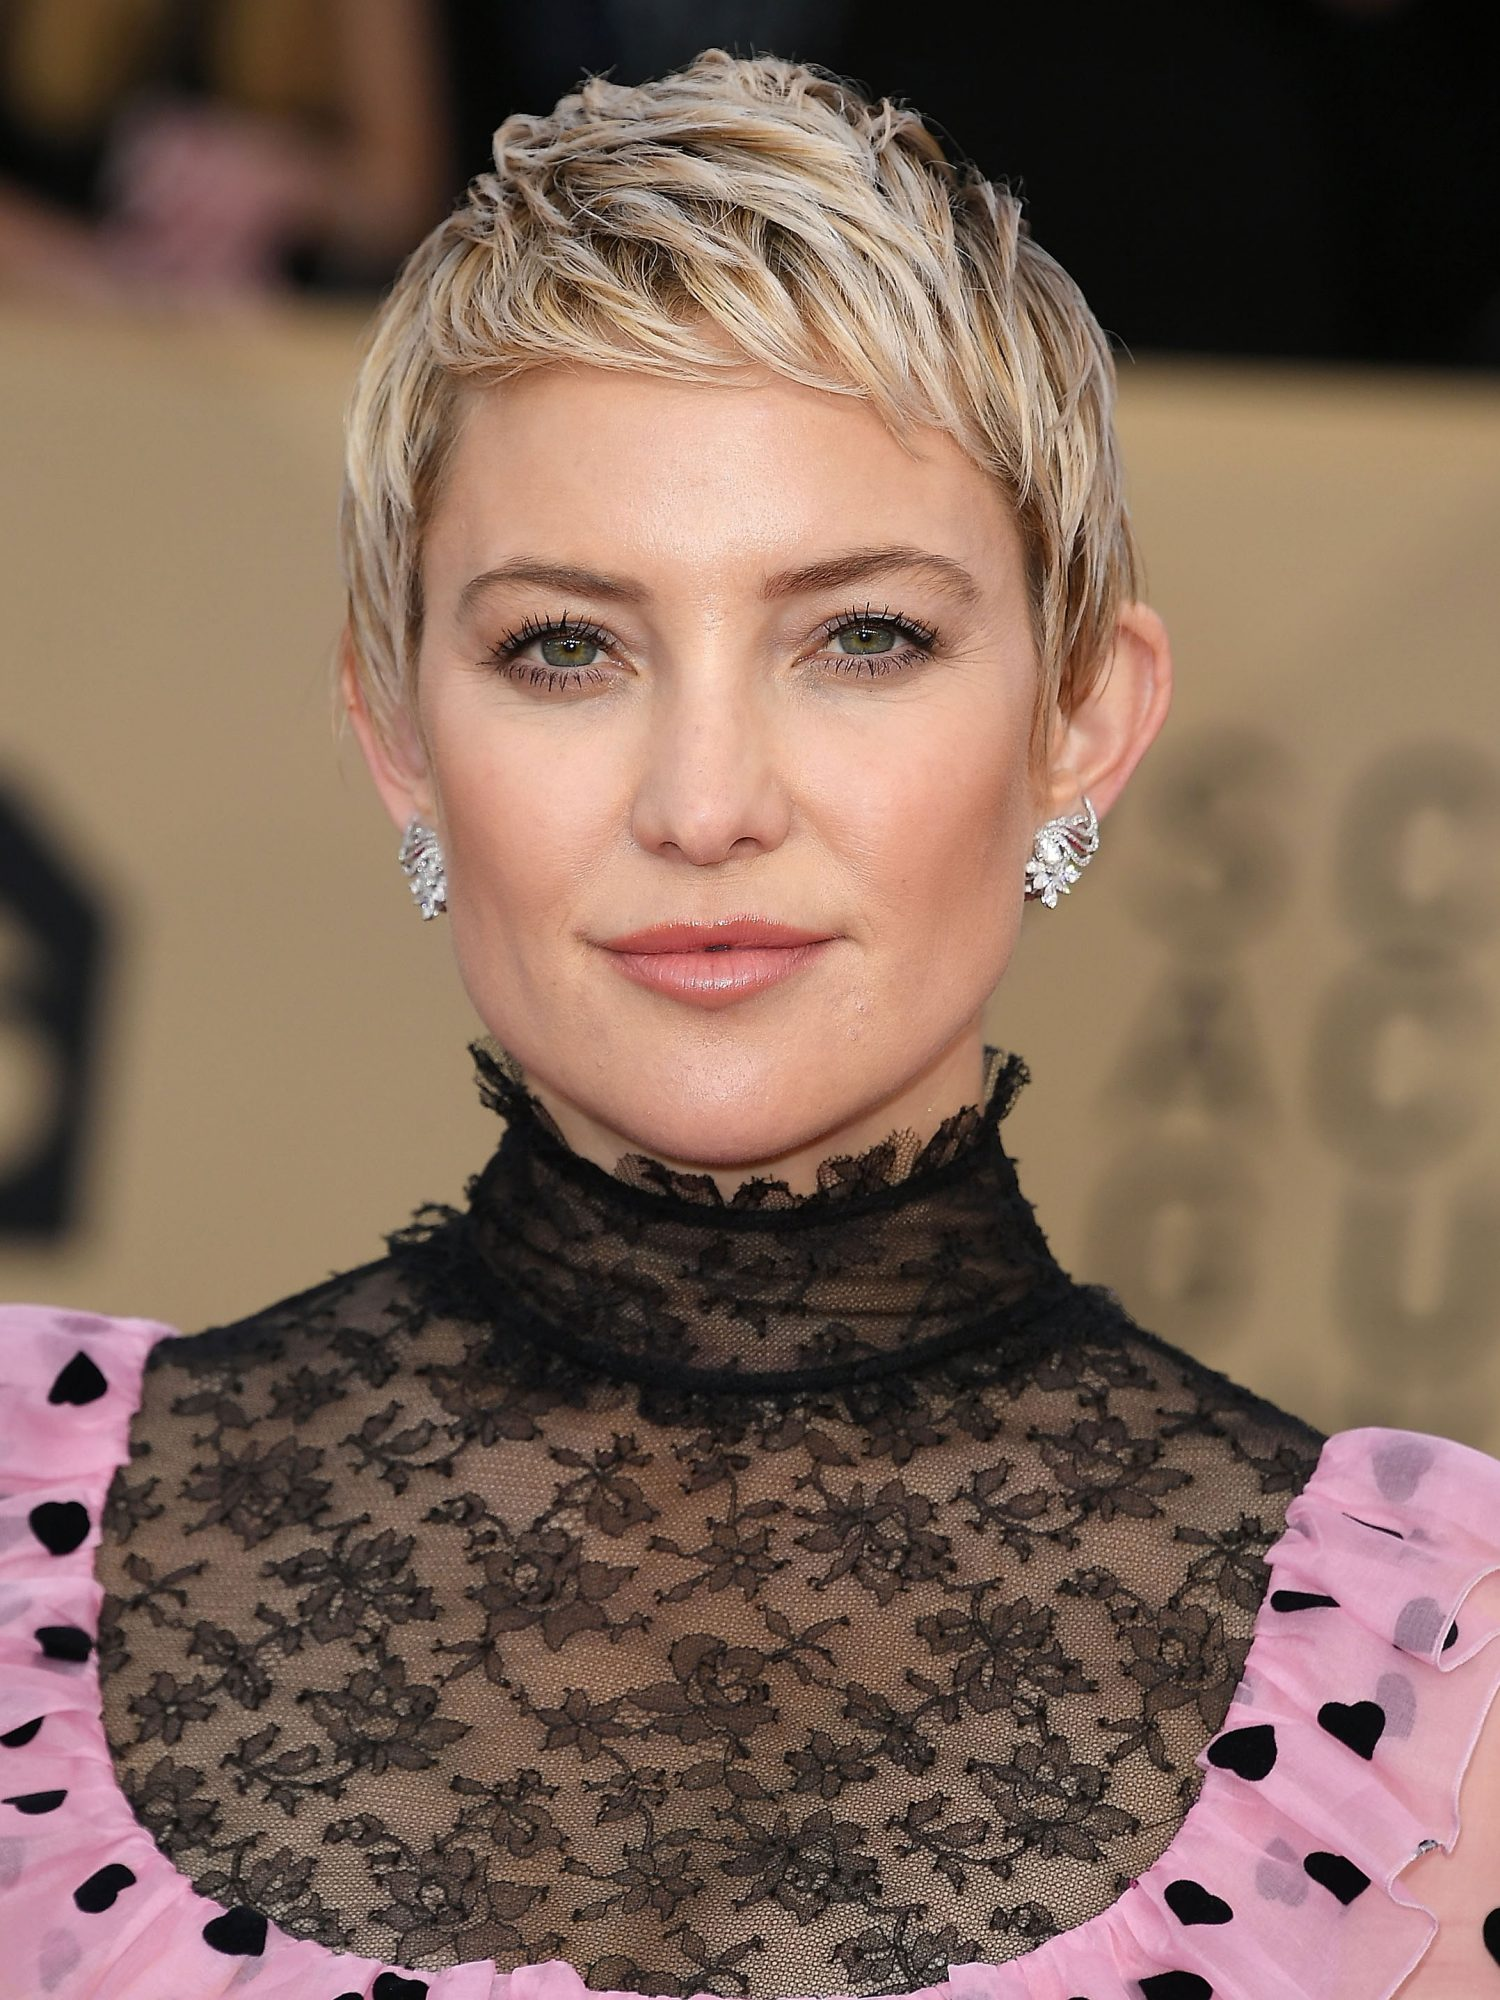 Hairstyles for Women Over 40 to Try in 2021